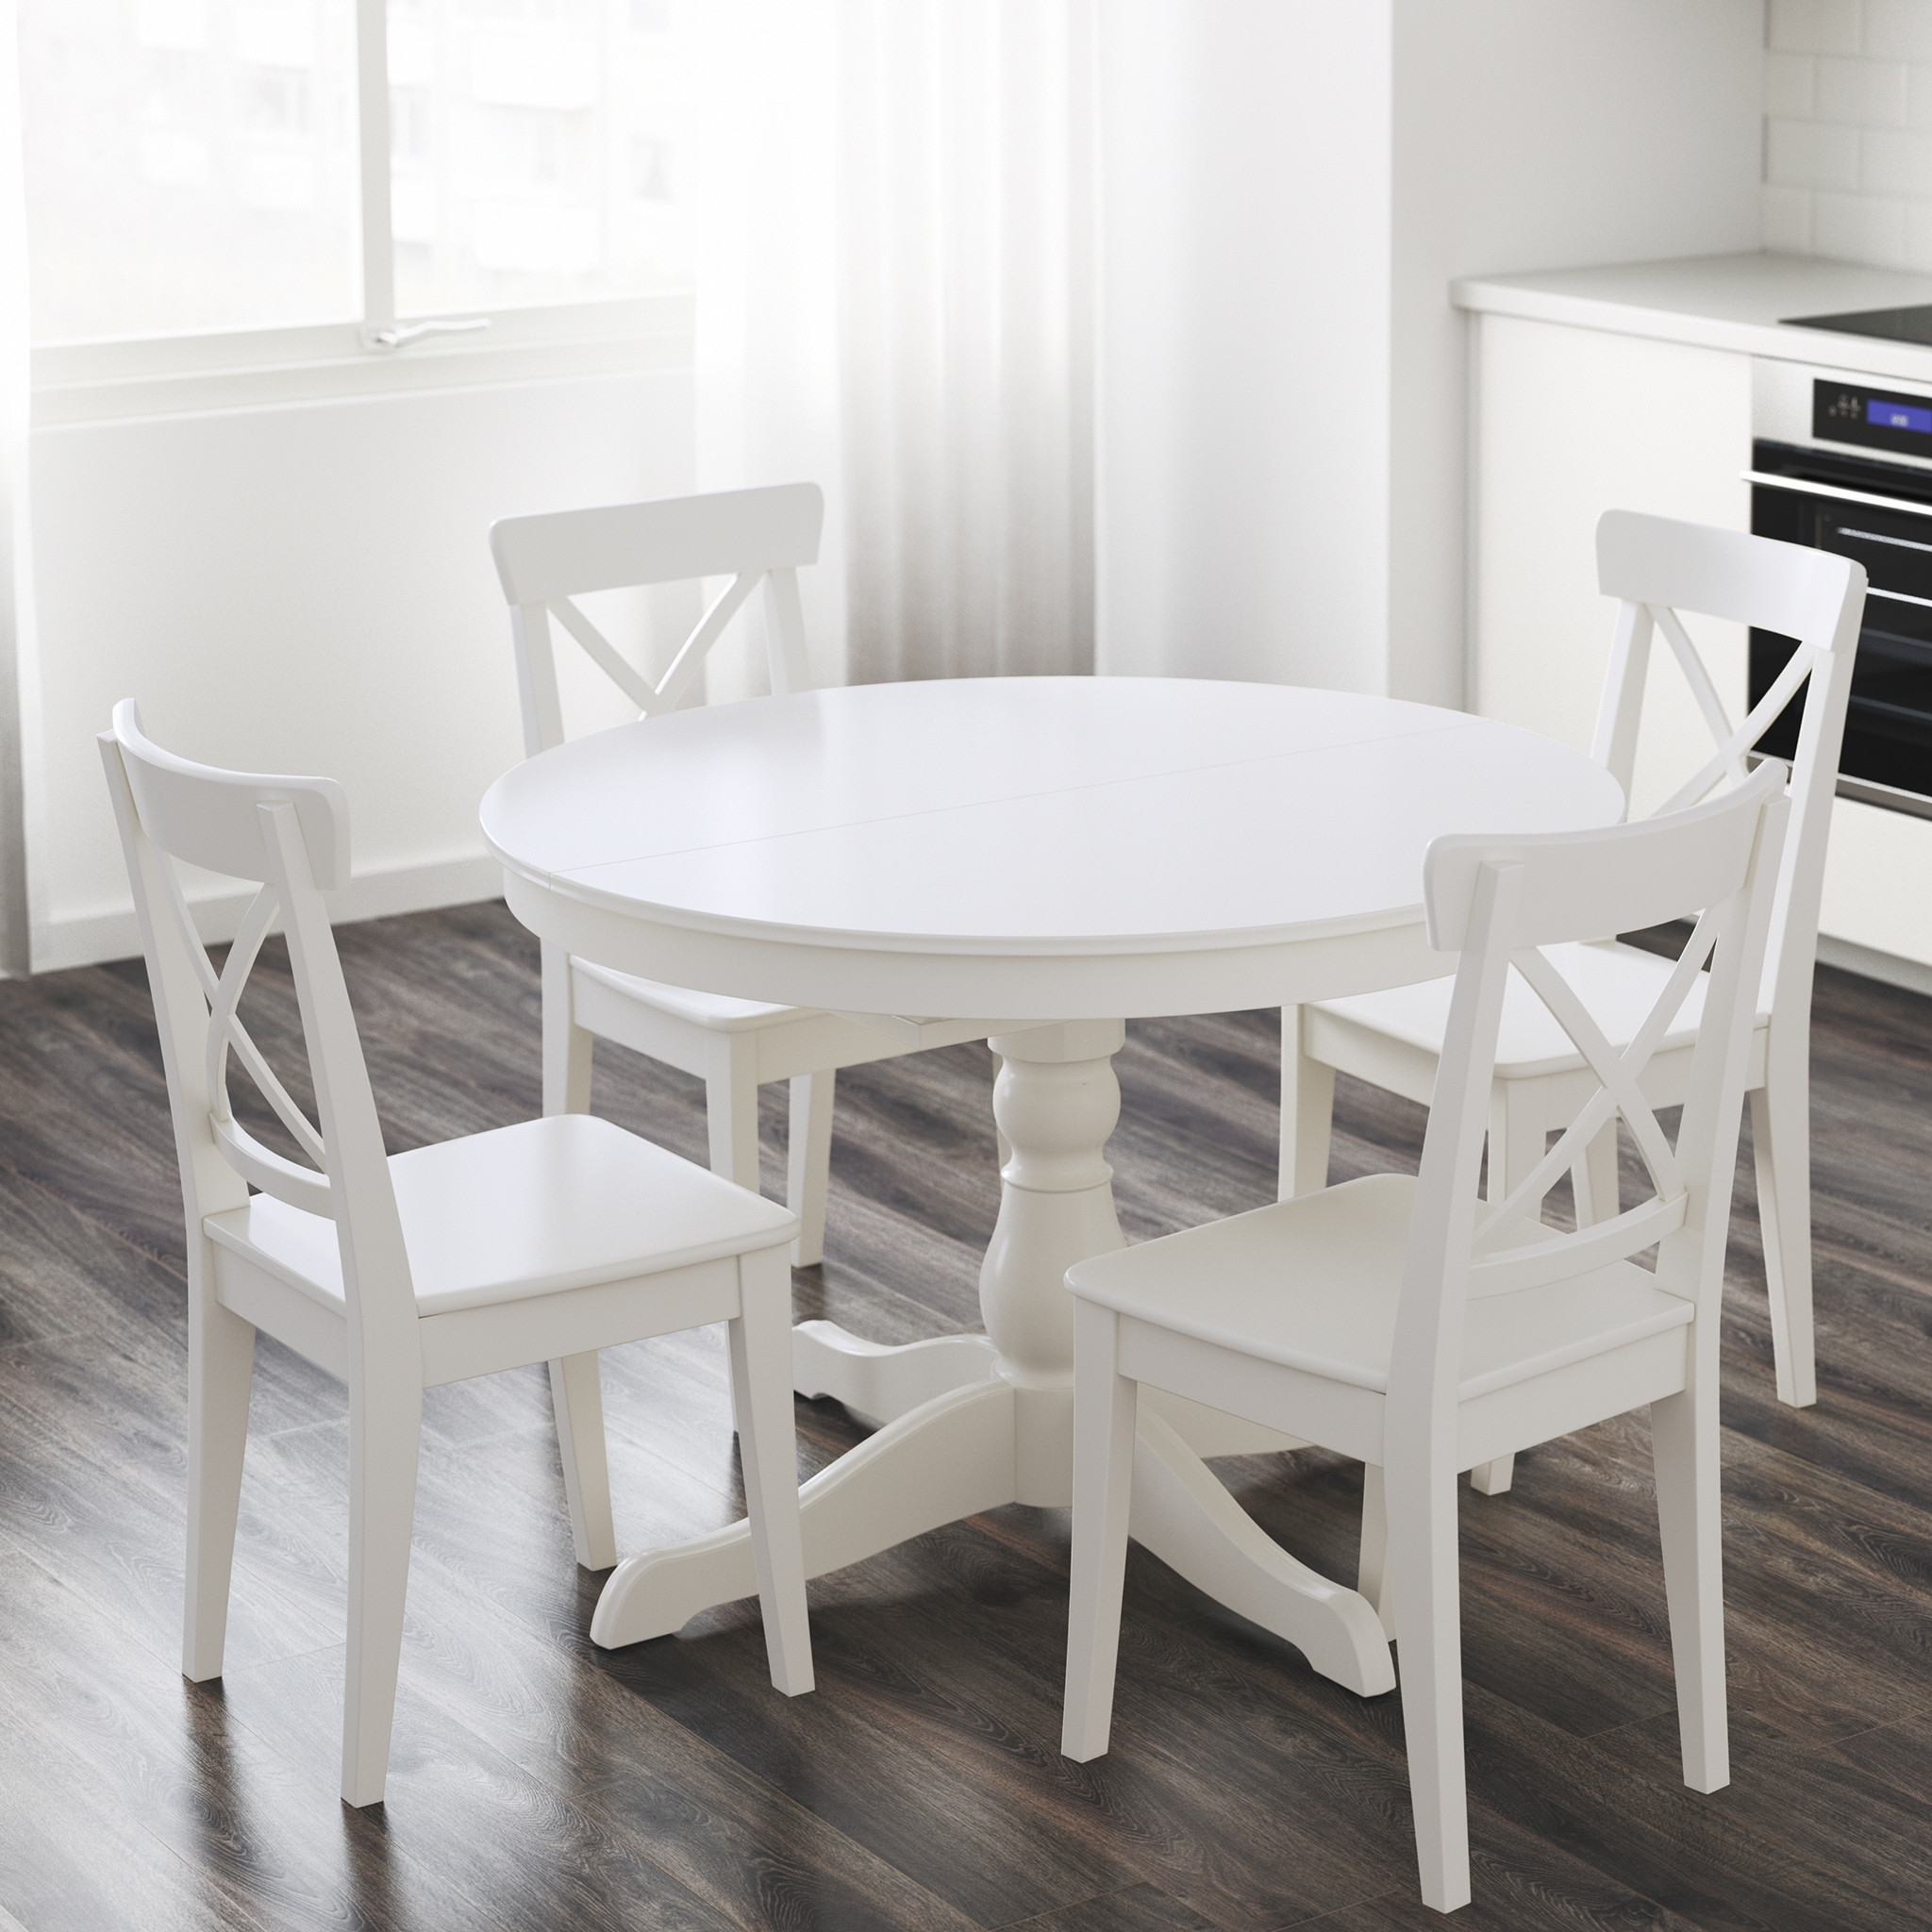 Best ideas about Ikea Dining Table . Save or Pin Dining Tables & Kitchen Tables Dining Room Tables Now.